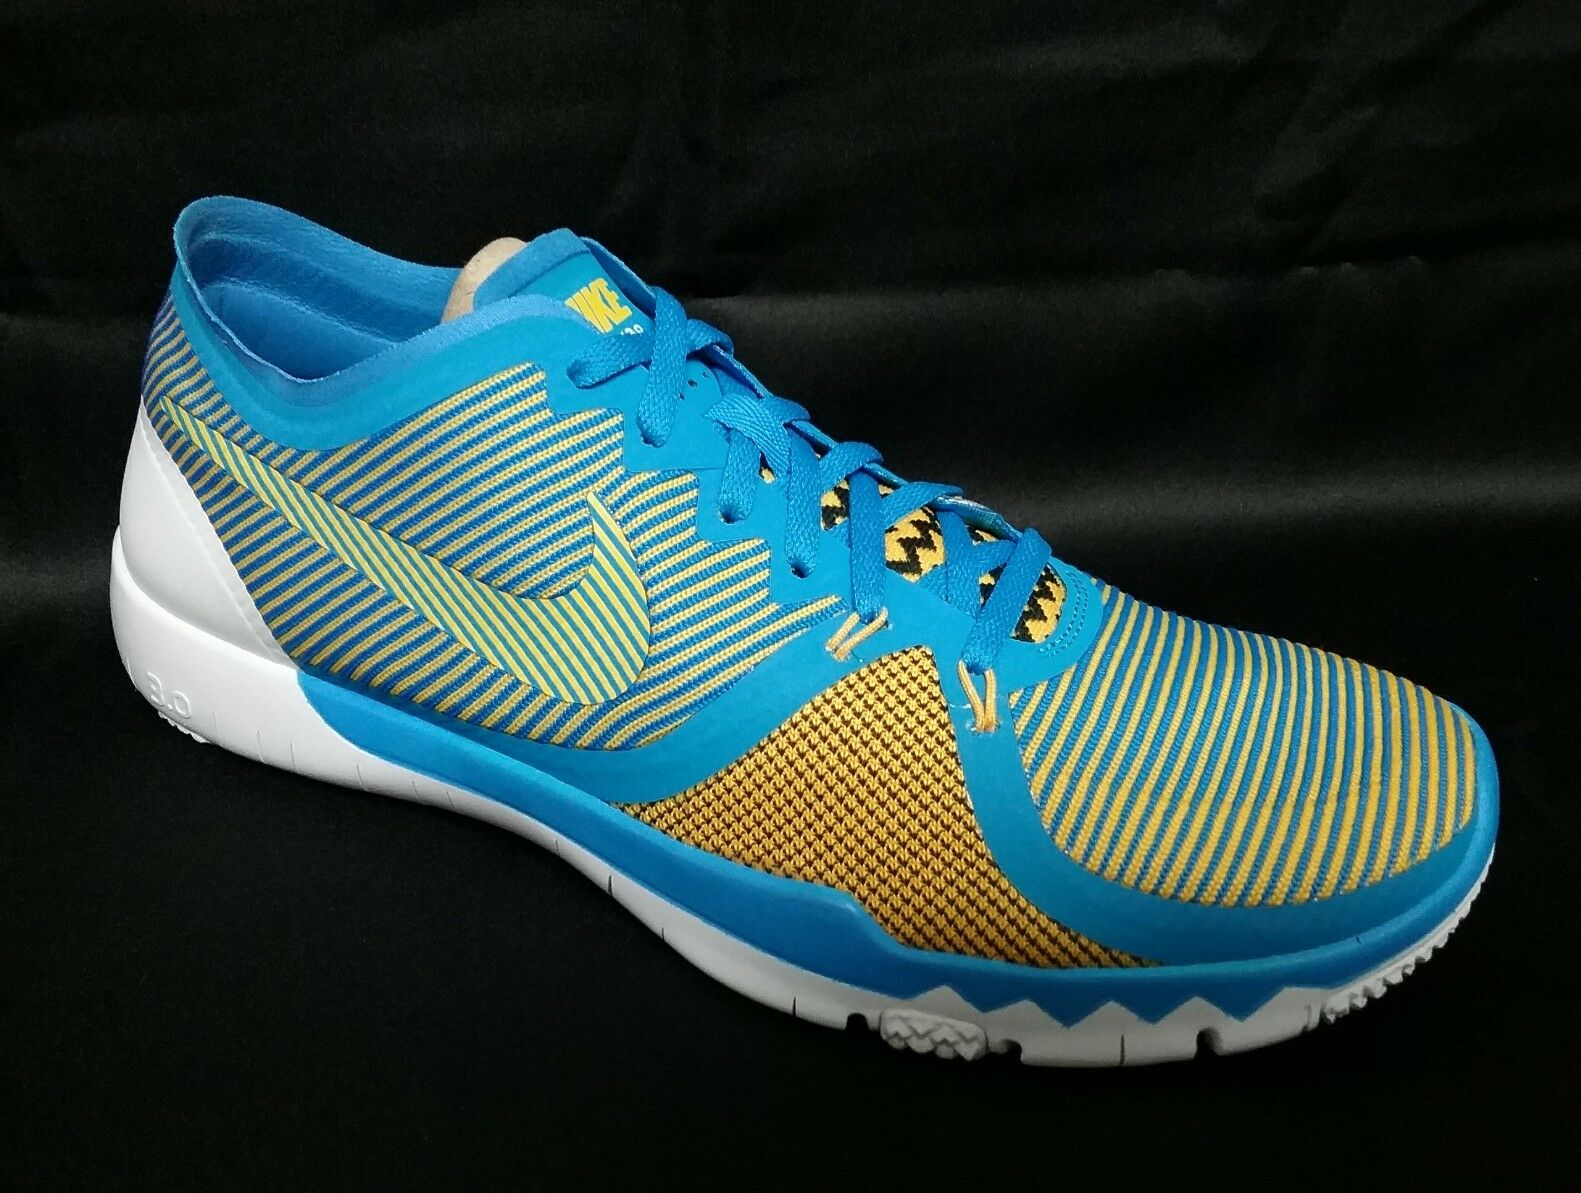 NIKE - 749361-014 - FREE TRAINER 3.0 - Men's Shoes - Blue Gold White - Comfortable Brand discount